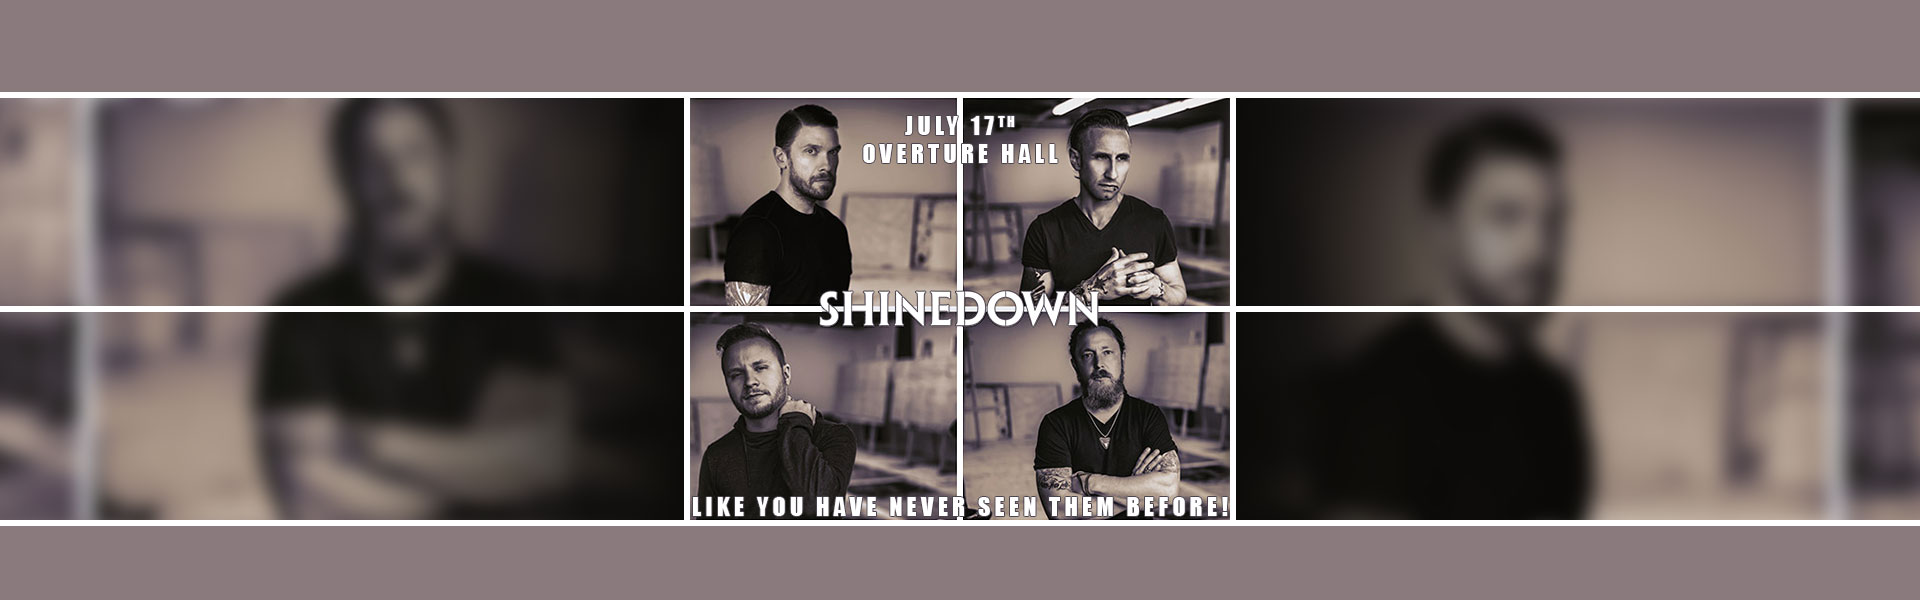 slide-shinedown-acoustic